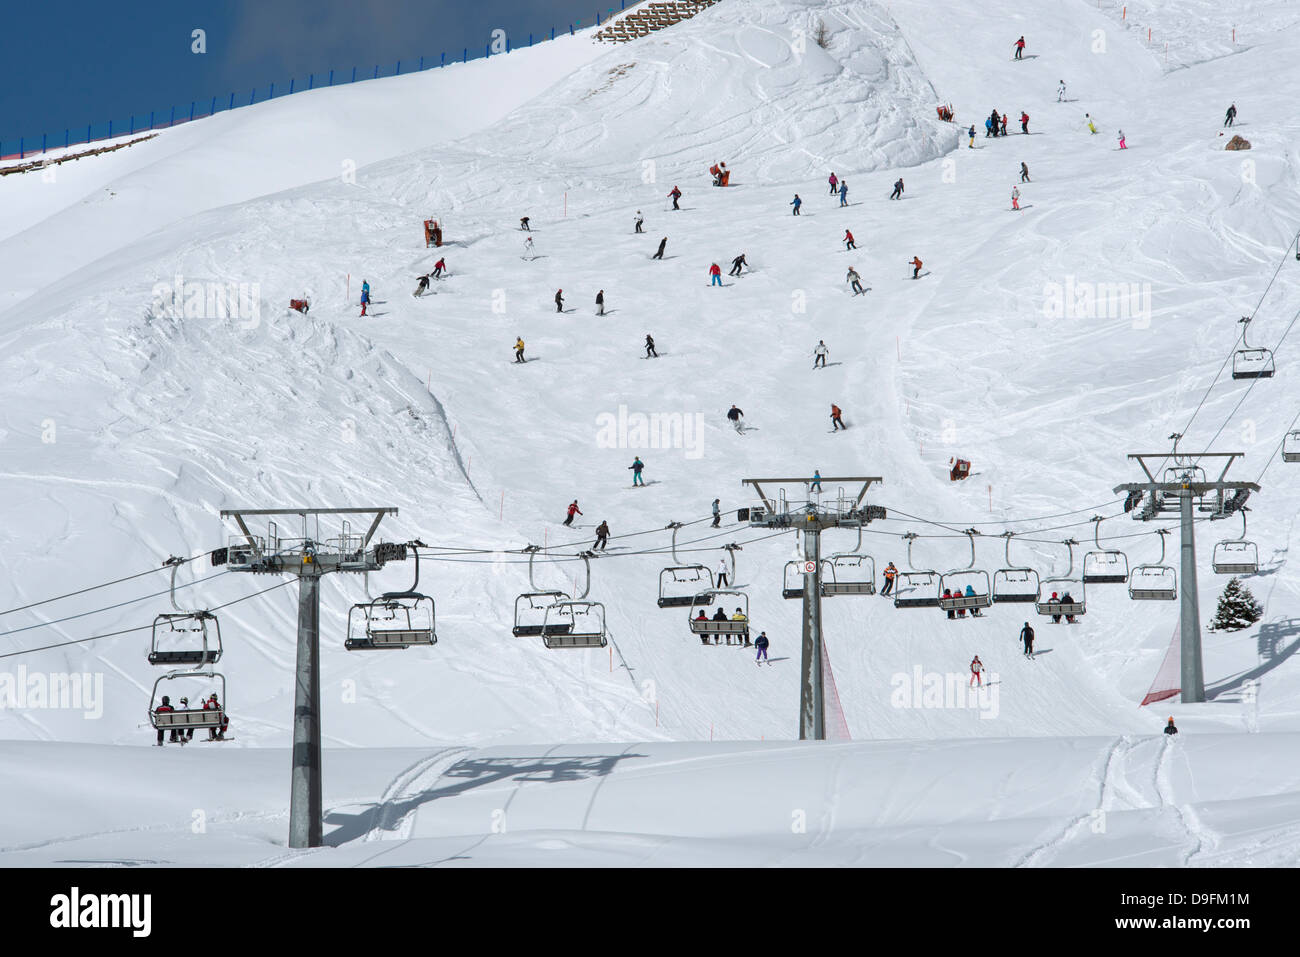 A chairlift and skiers on piste at Passo Sella in the Dolomite Mountains, South Tyrol, Italy - Stock Image